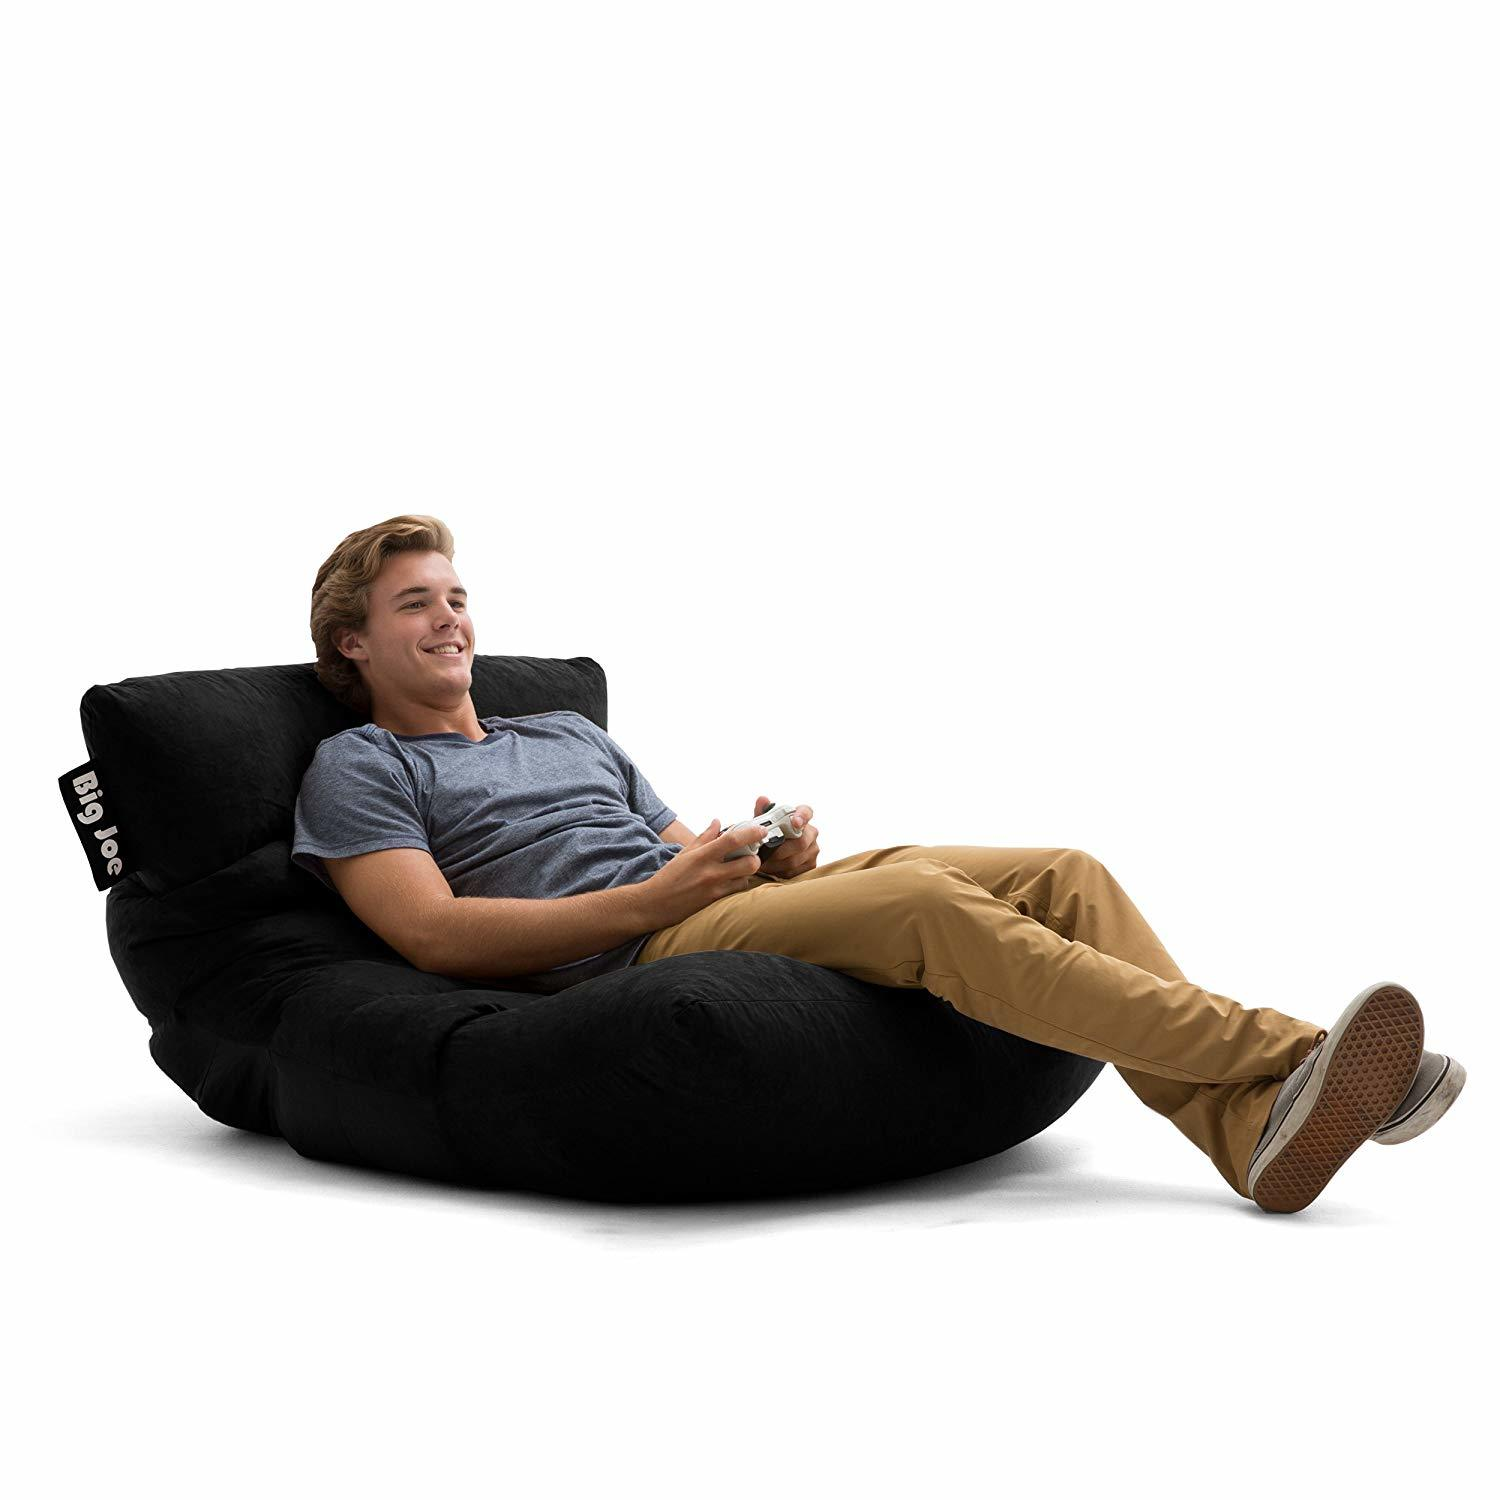 Best Bean Bag Chairs Big Joe 0657378 Roma in Comfort Suede Plus Bean Bag.  They say you get what ... 79cabe884c463